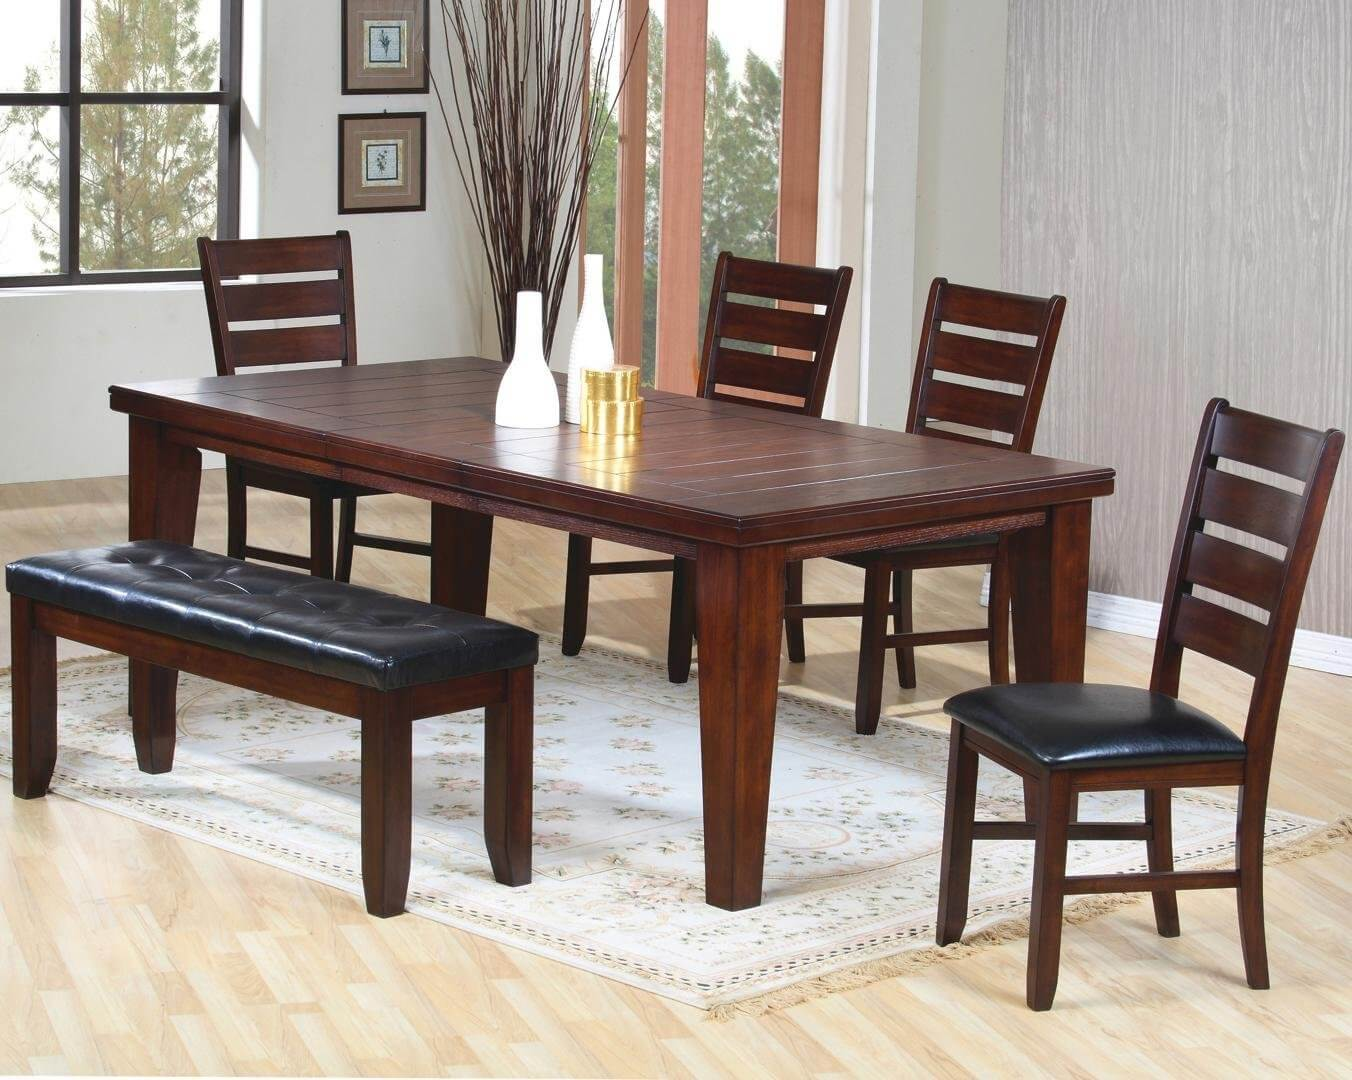 solid wood dining room sets. Solid wood six piece dining set with cushioned bench  The finish is dark oak 26 Dining Room Sets Big and Small Bench Seating 2018